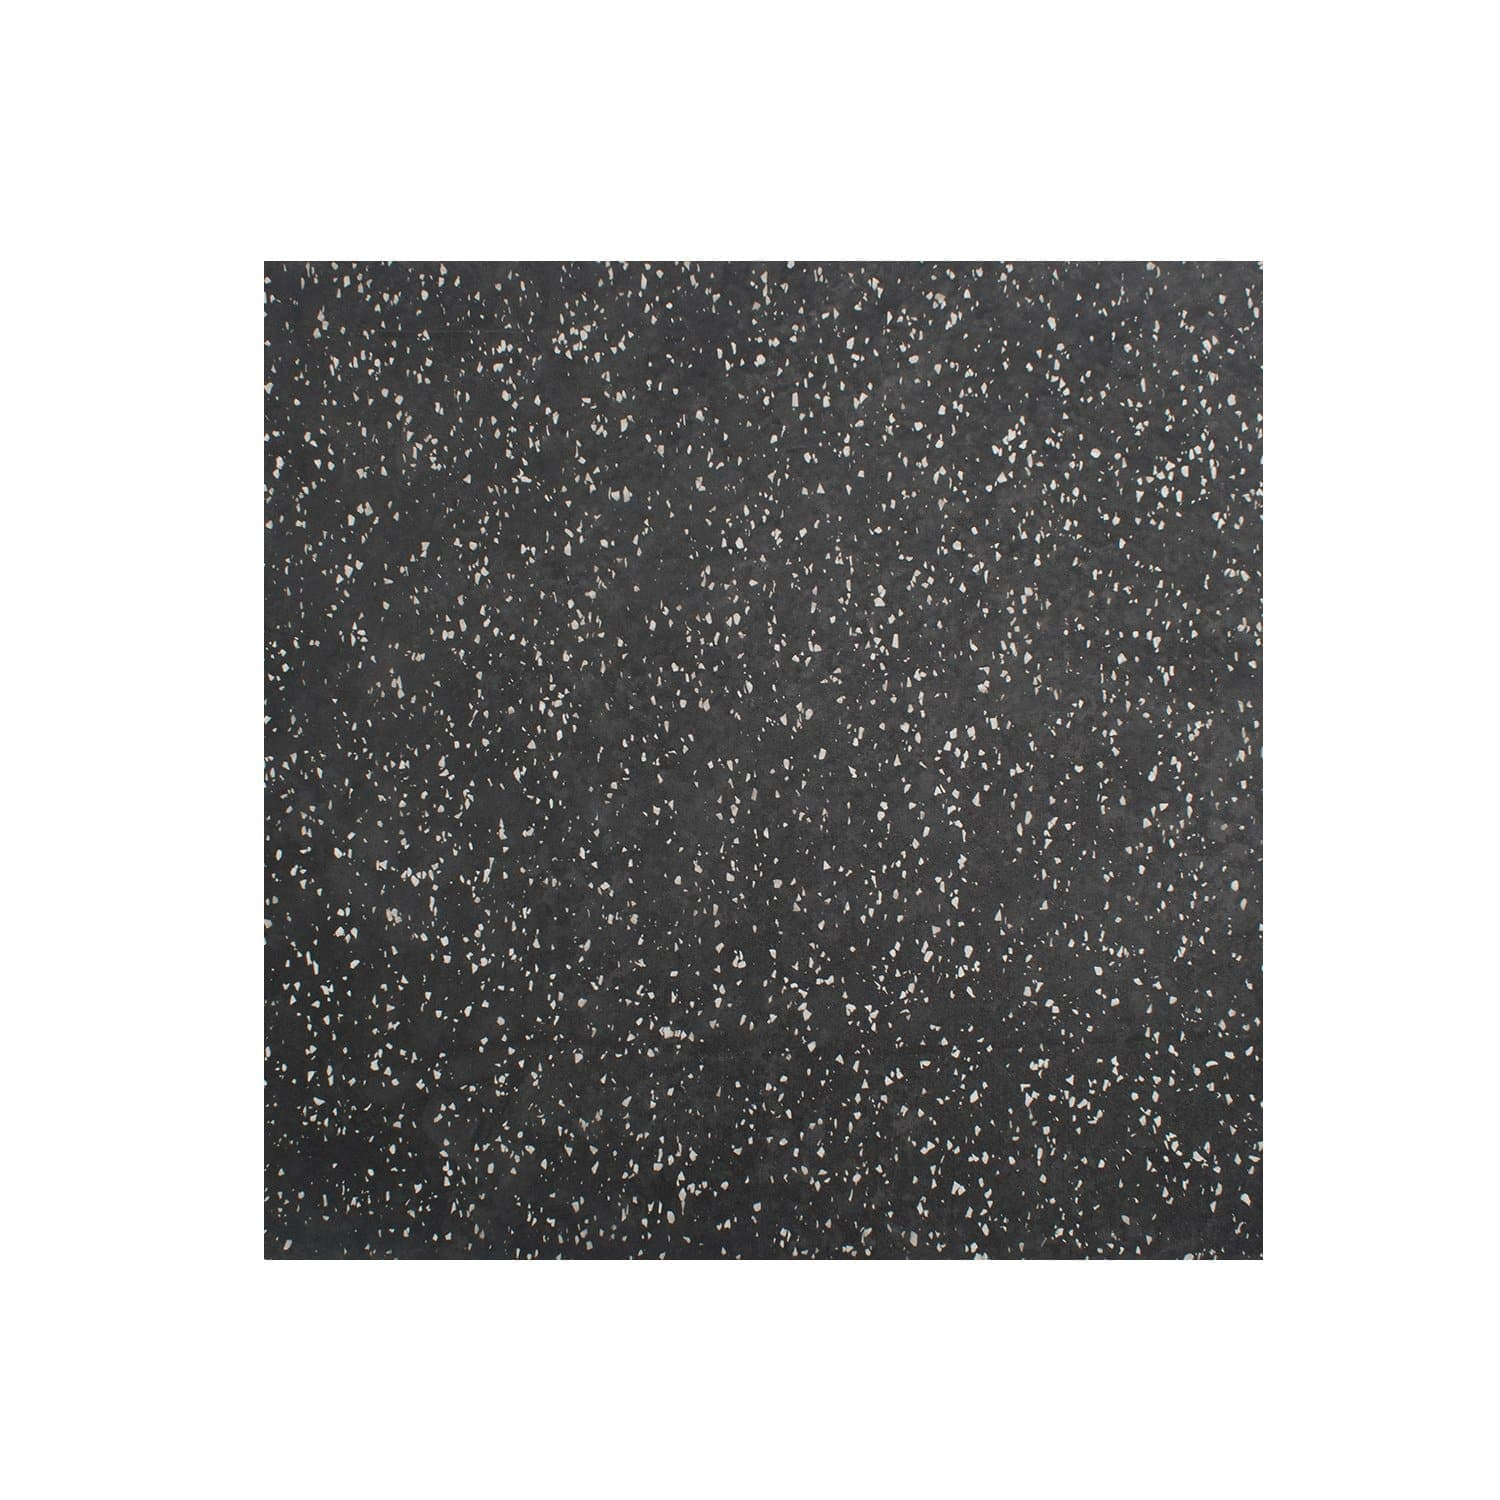 Element Fitness Rubber Tiles 20mm - Black with White Speckles